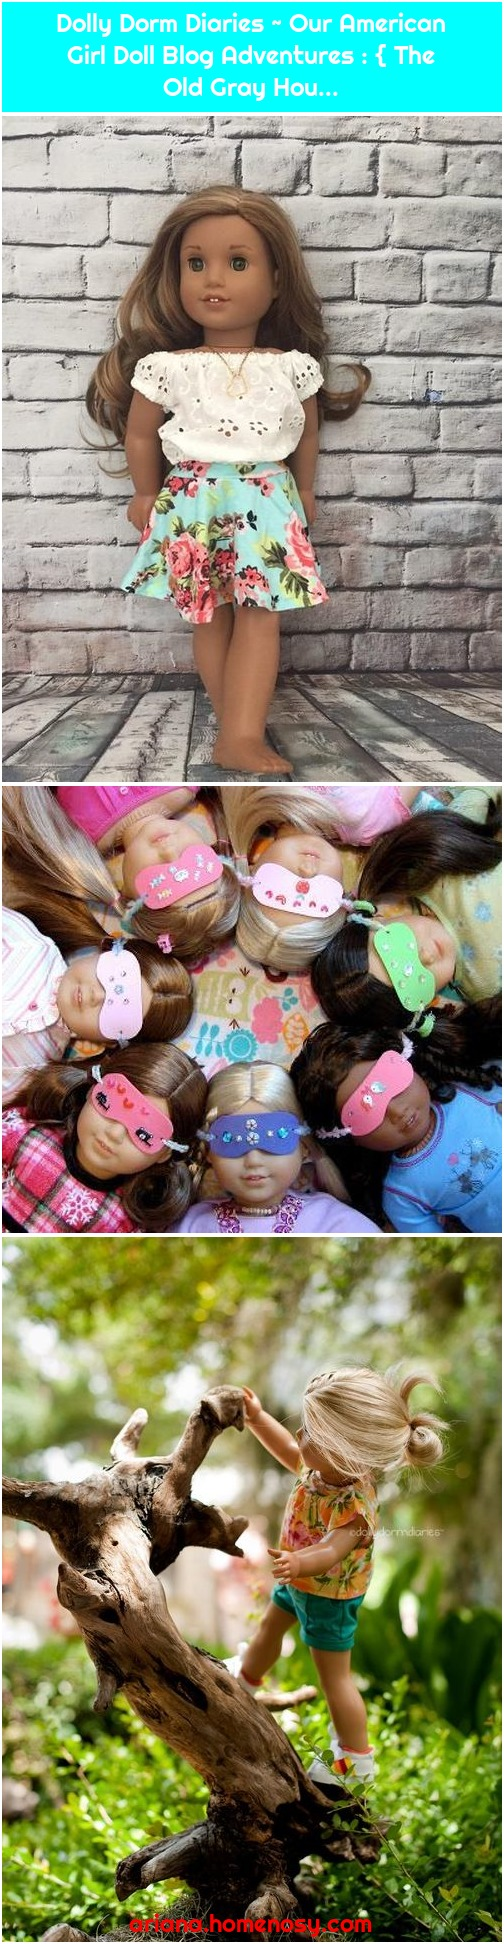 Dolly Dorm Diaries ~ Our American Girl Doll Blog Adventures : { The Old Gray Hou...